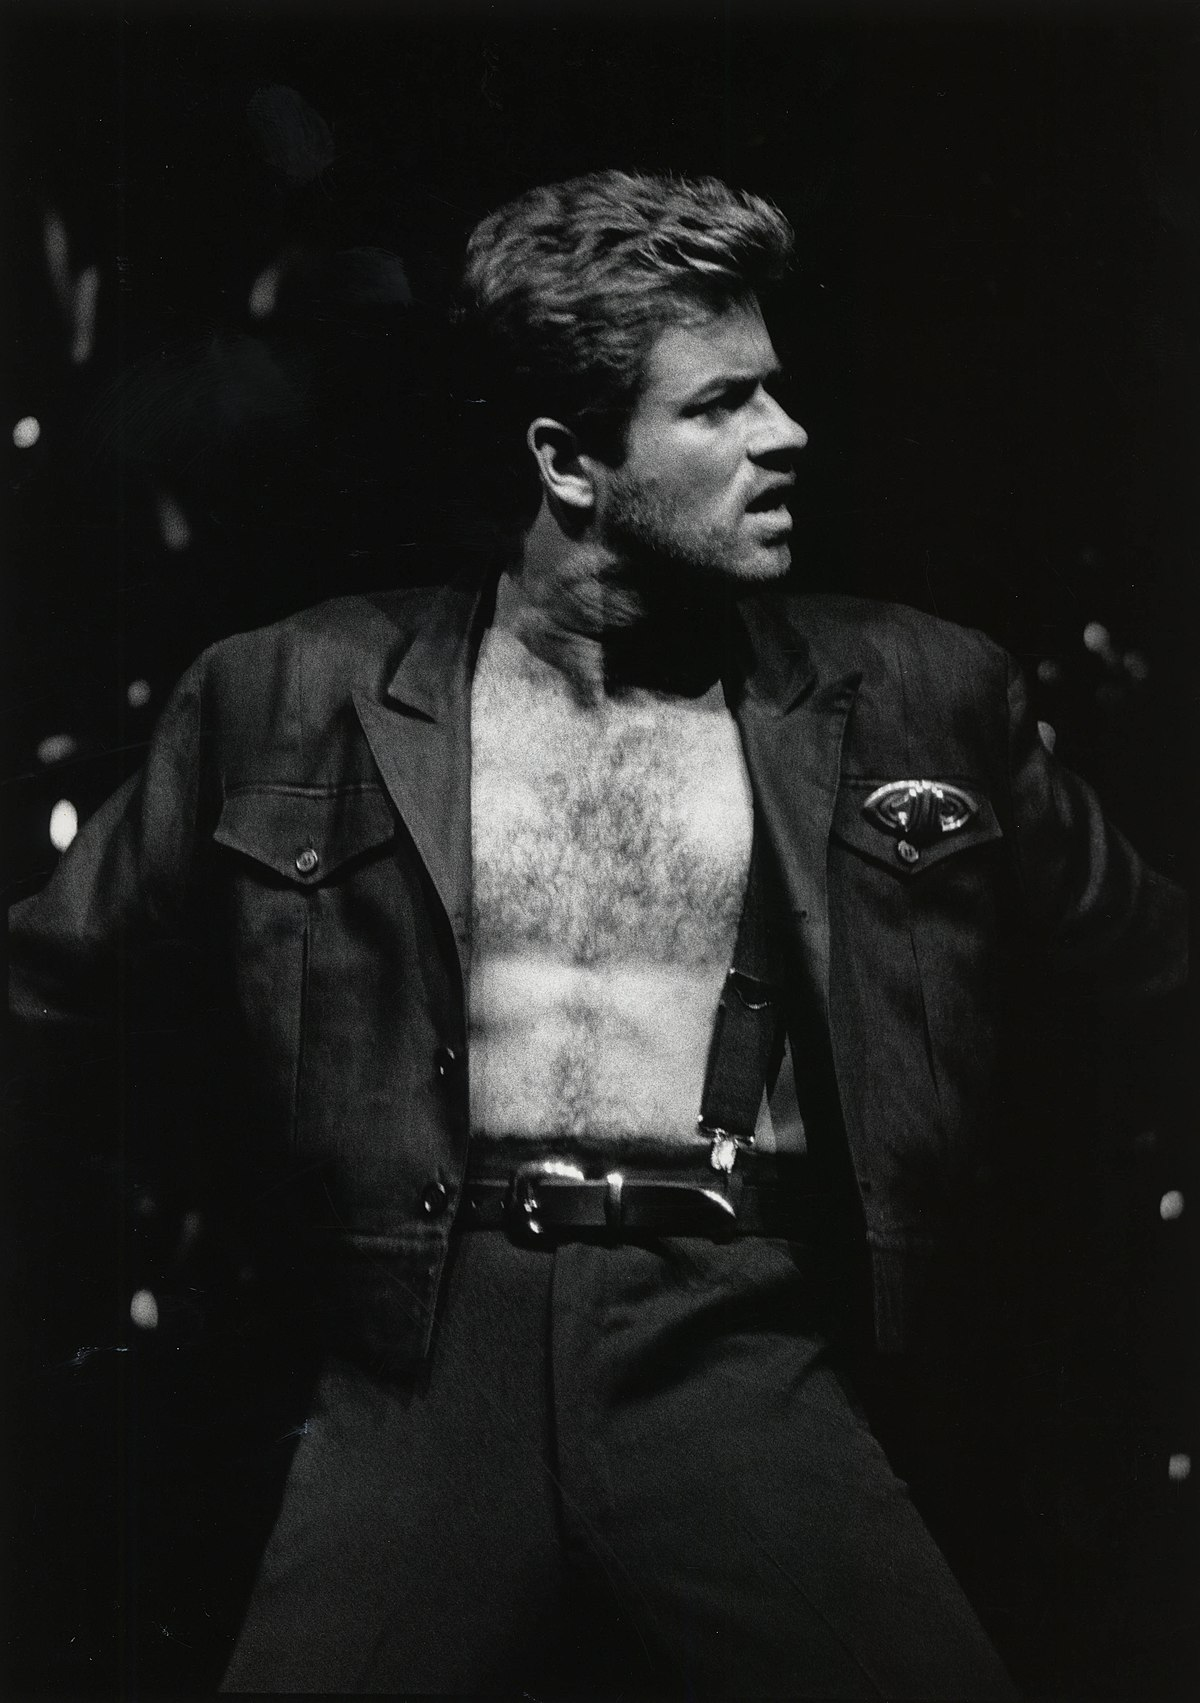 George Michael - Wikipedia